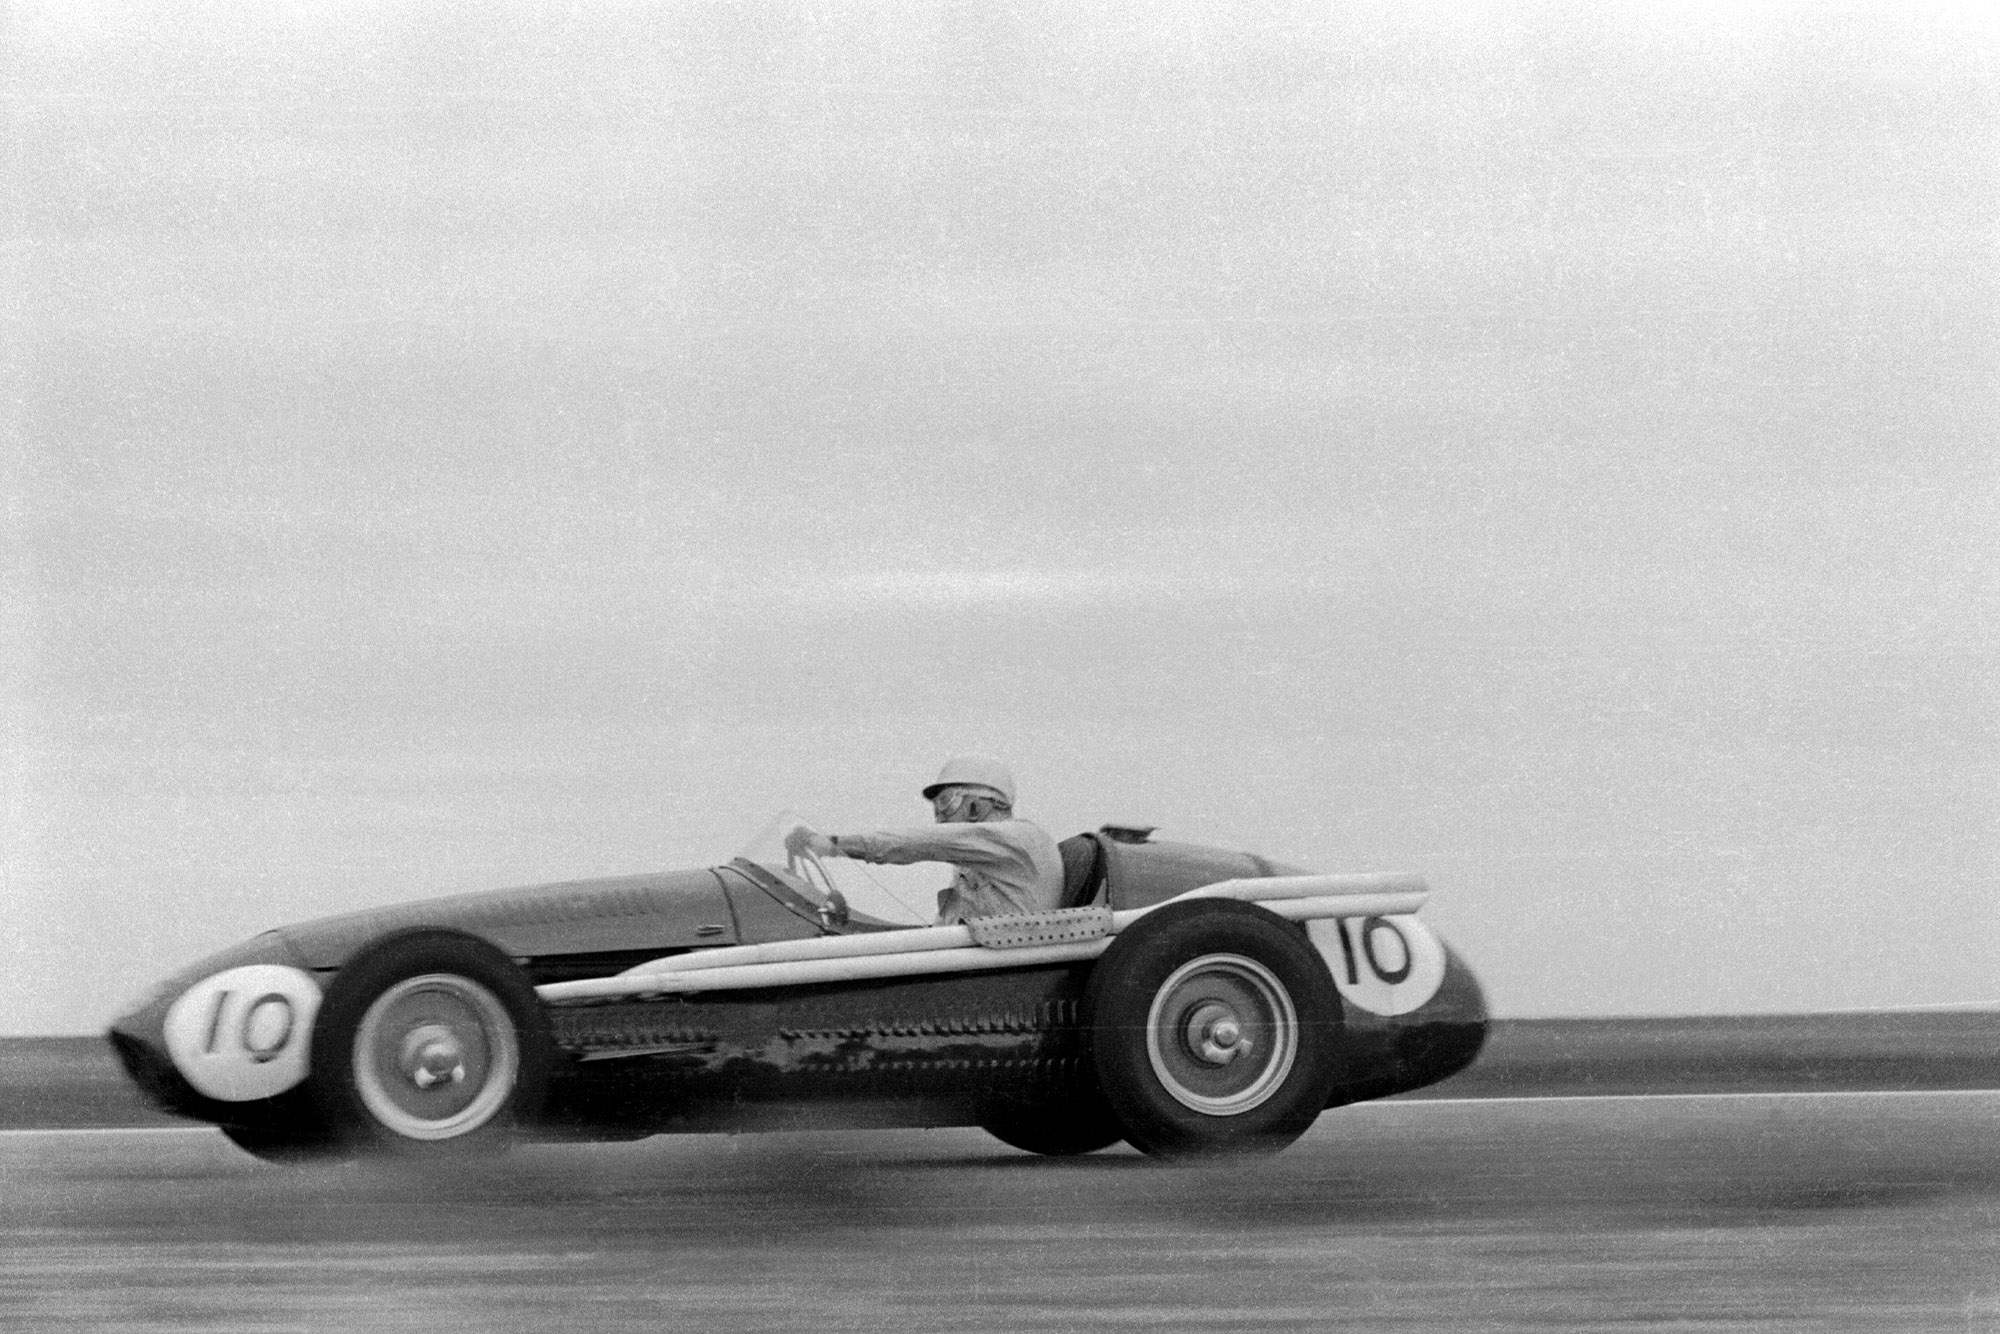 Stirling Moss at speed in a Maserati 250F in the Glover Trophy at Goodwood